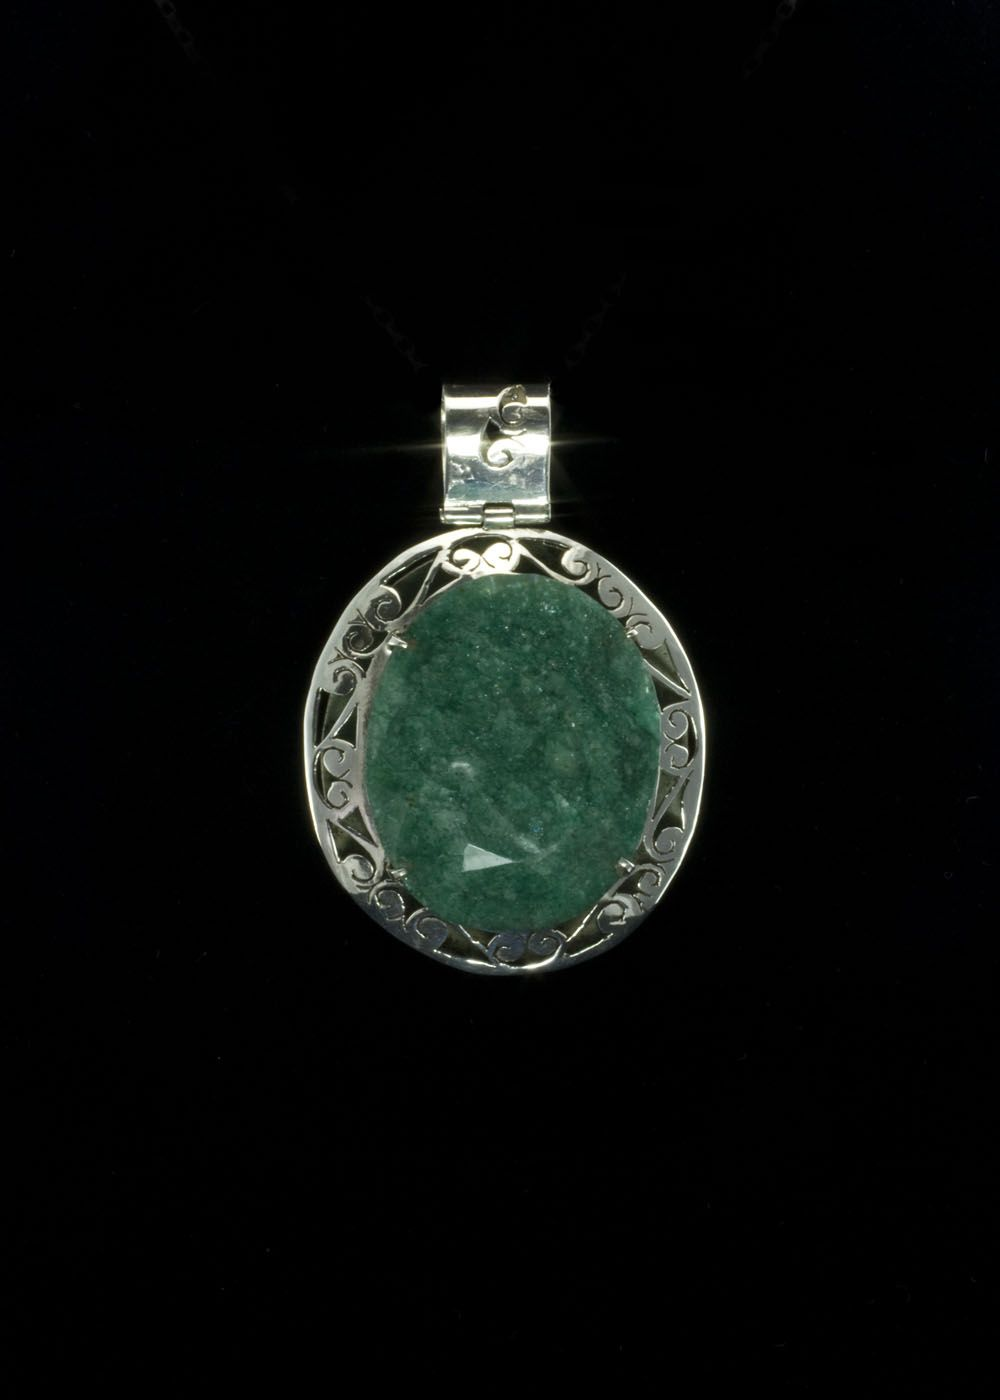 leaf silver pcs natural gift fashion product jewelry necklaces pure sterling luxury for pendant woman emerald wholesale